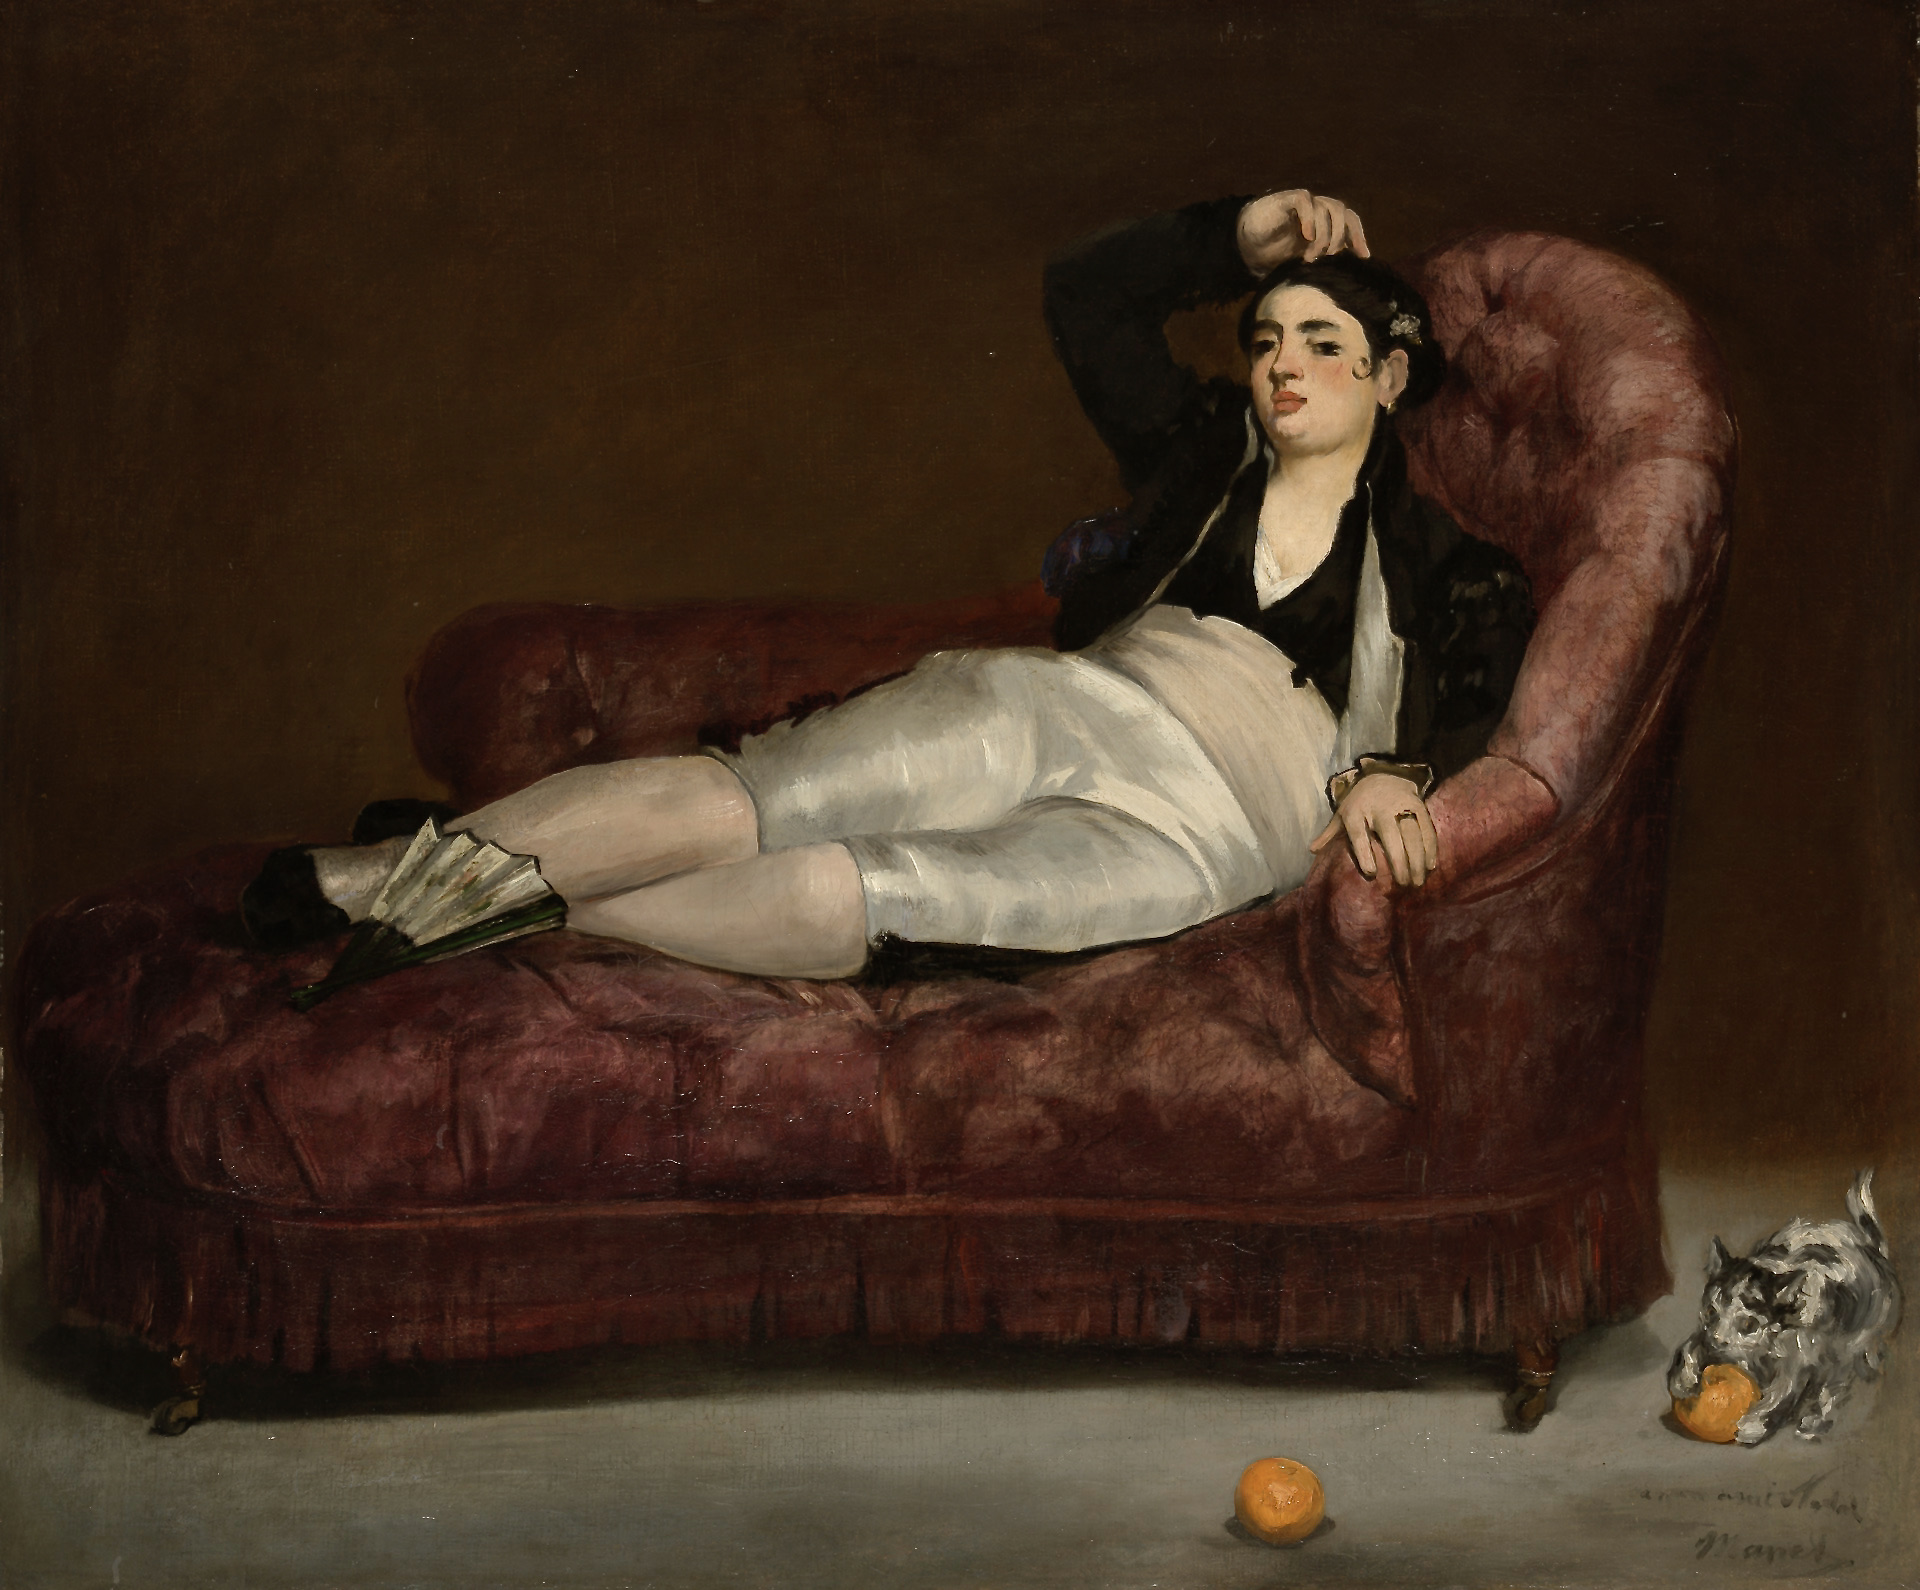 Édouard_Manet_-_Reclining_Young_Woman_in_Spanish_Costume_-_1961.18.33_-_Yale_University_Art_Gallery 2